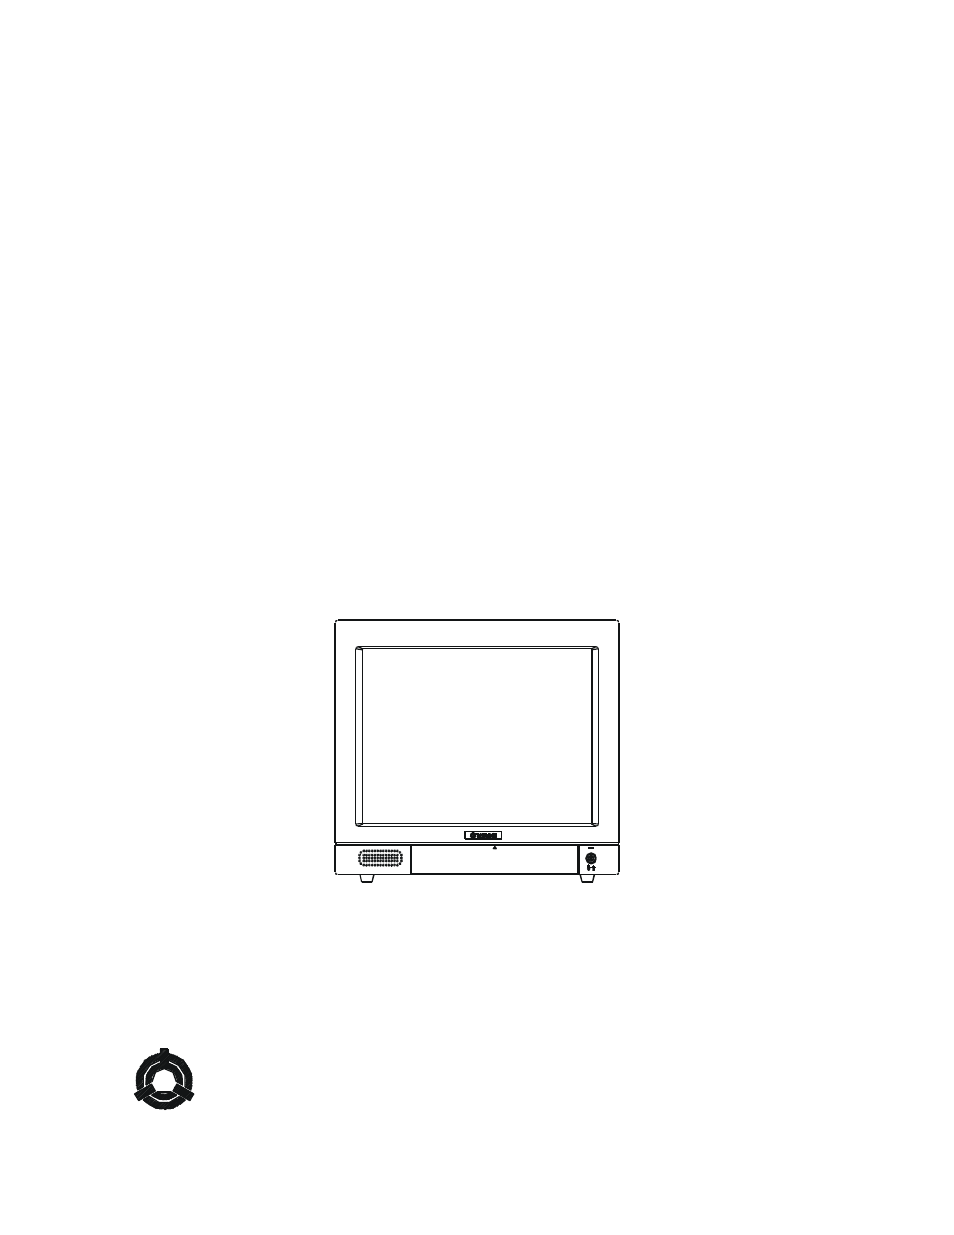 Tatung Tcm 1901 User Manual 21 Pages Also For Tcm